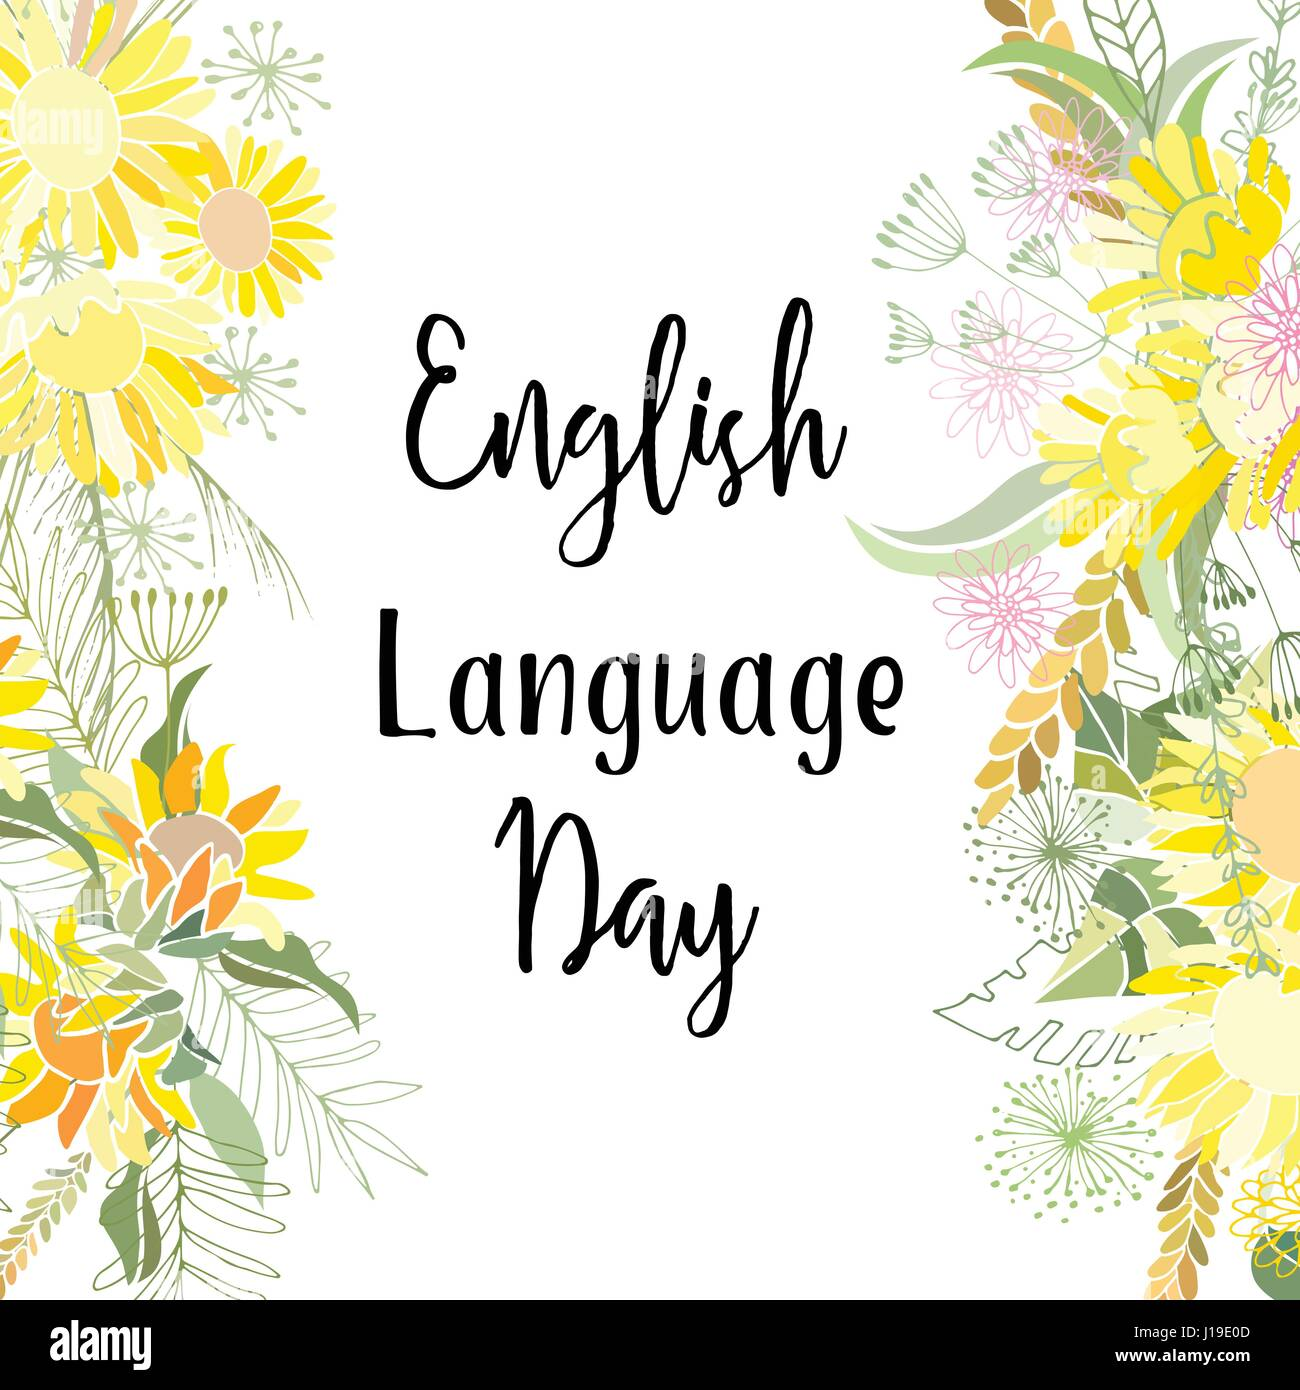 Greeting Card Of The English Language Day Abstract Background Stock